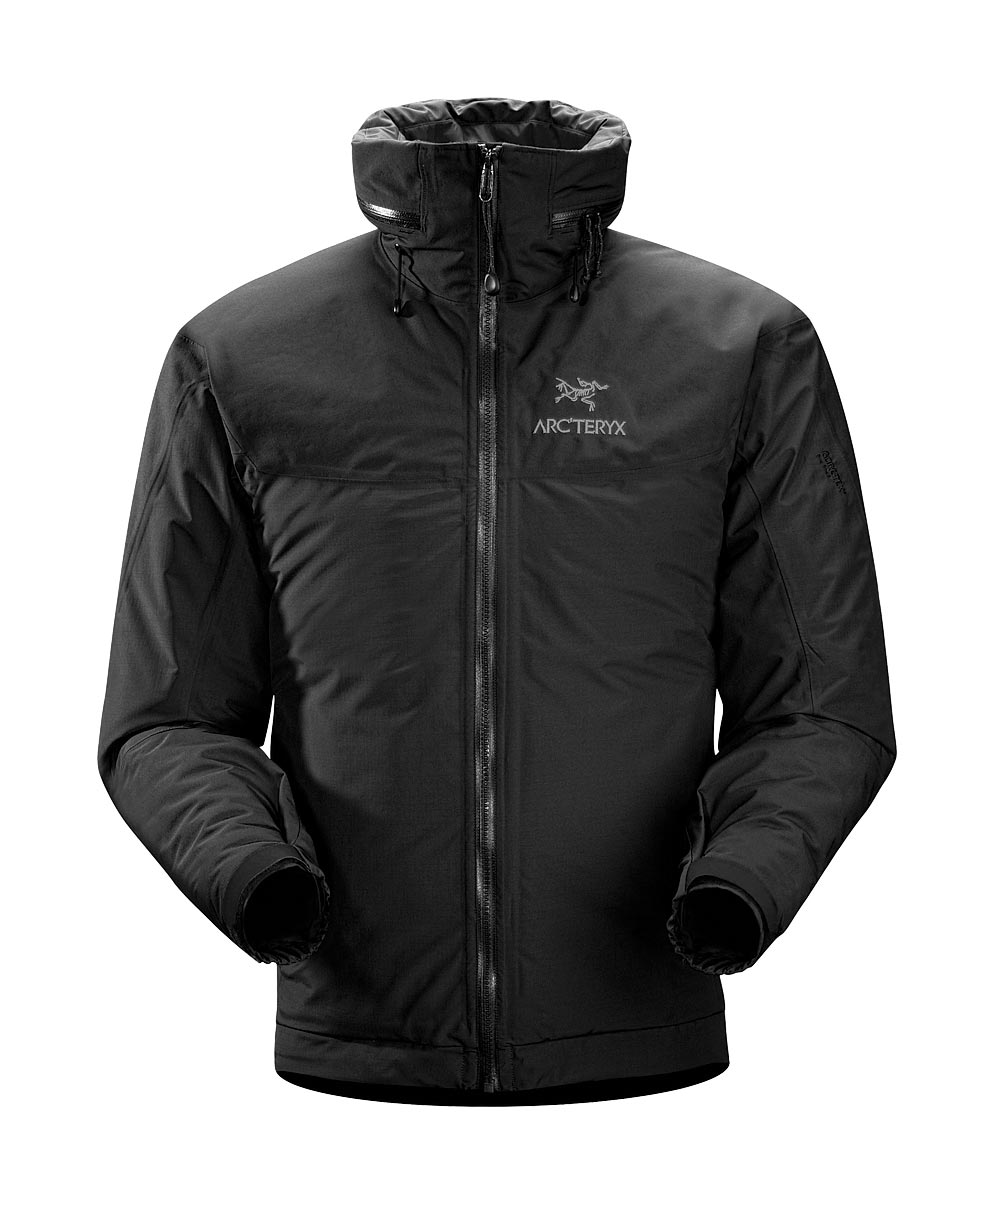 Arcteryx Jackets Men Black Fission AR Jacket